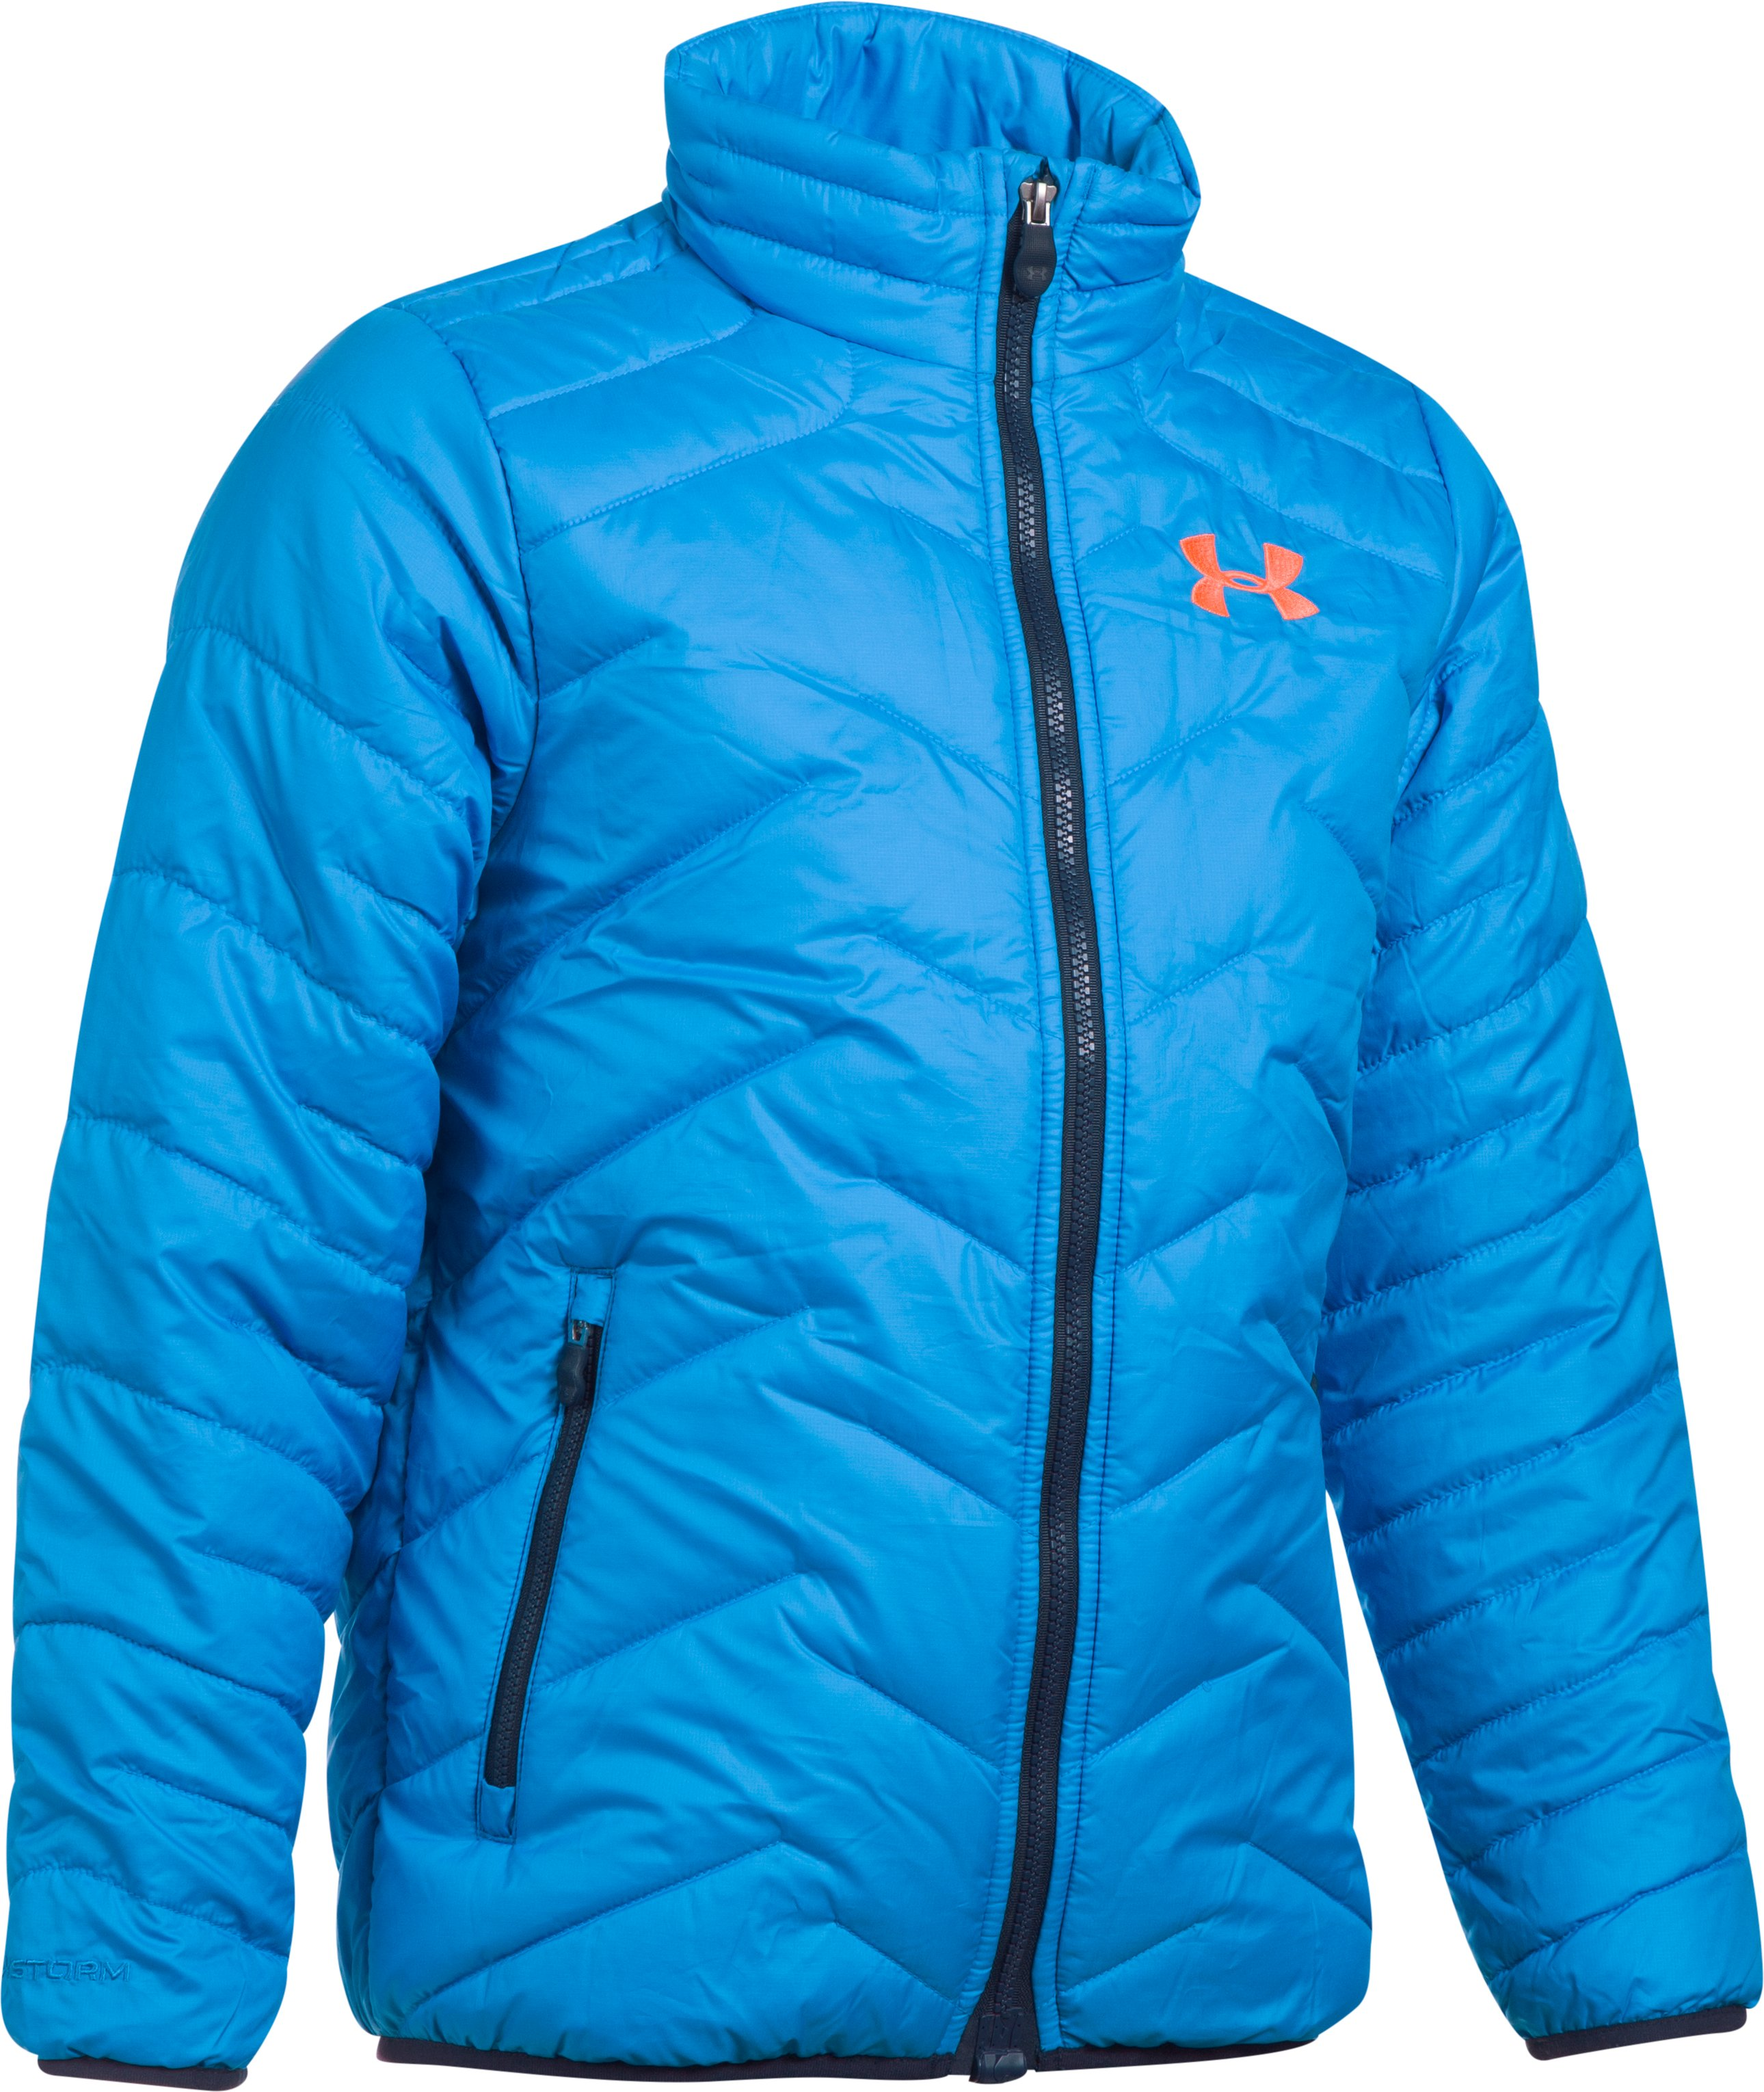 Boys' ColdGear® Reactor Jacket, MAKO BLUE